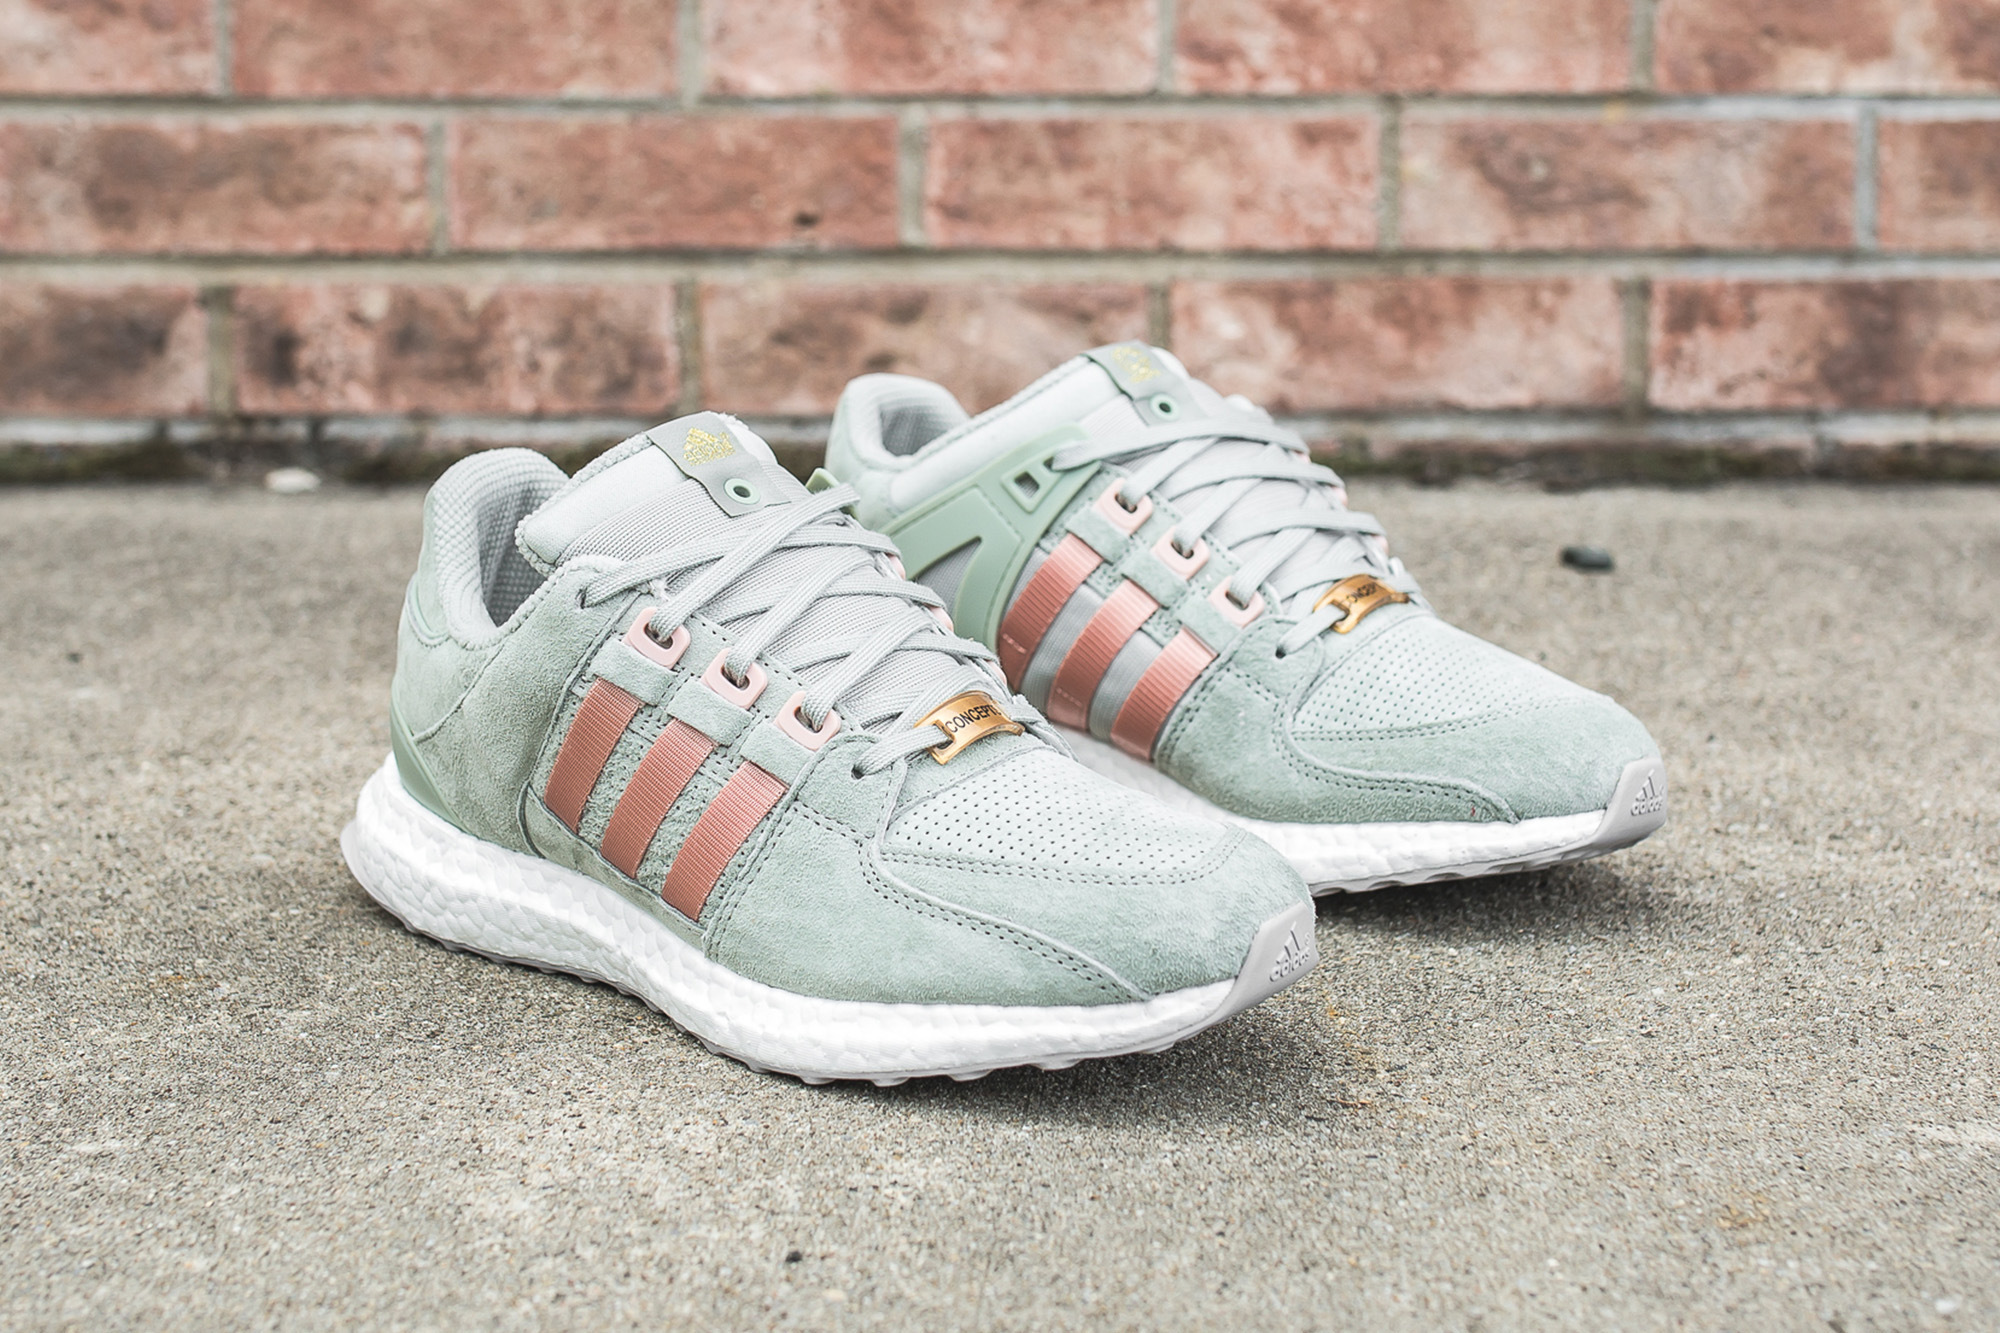 Sneakers Of The Day: adidas Originals EQT Modern City Series Part 2